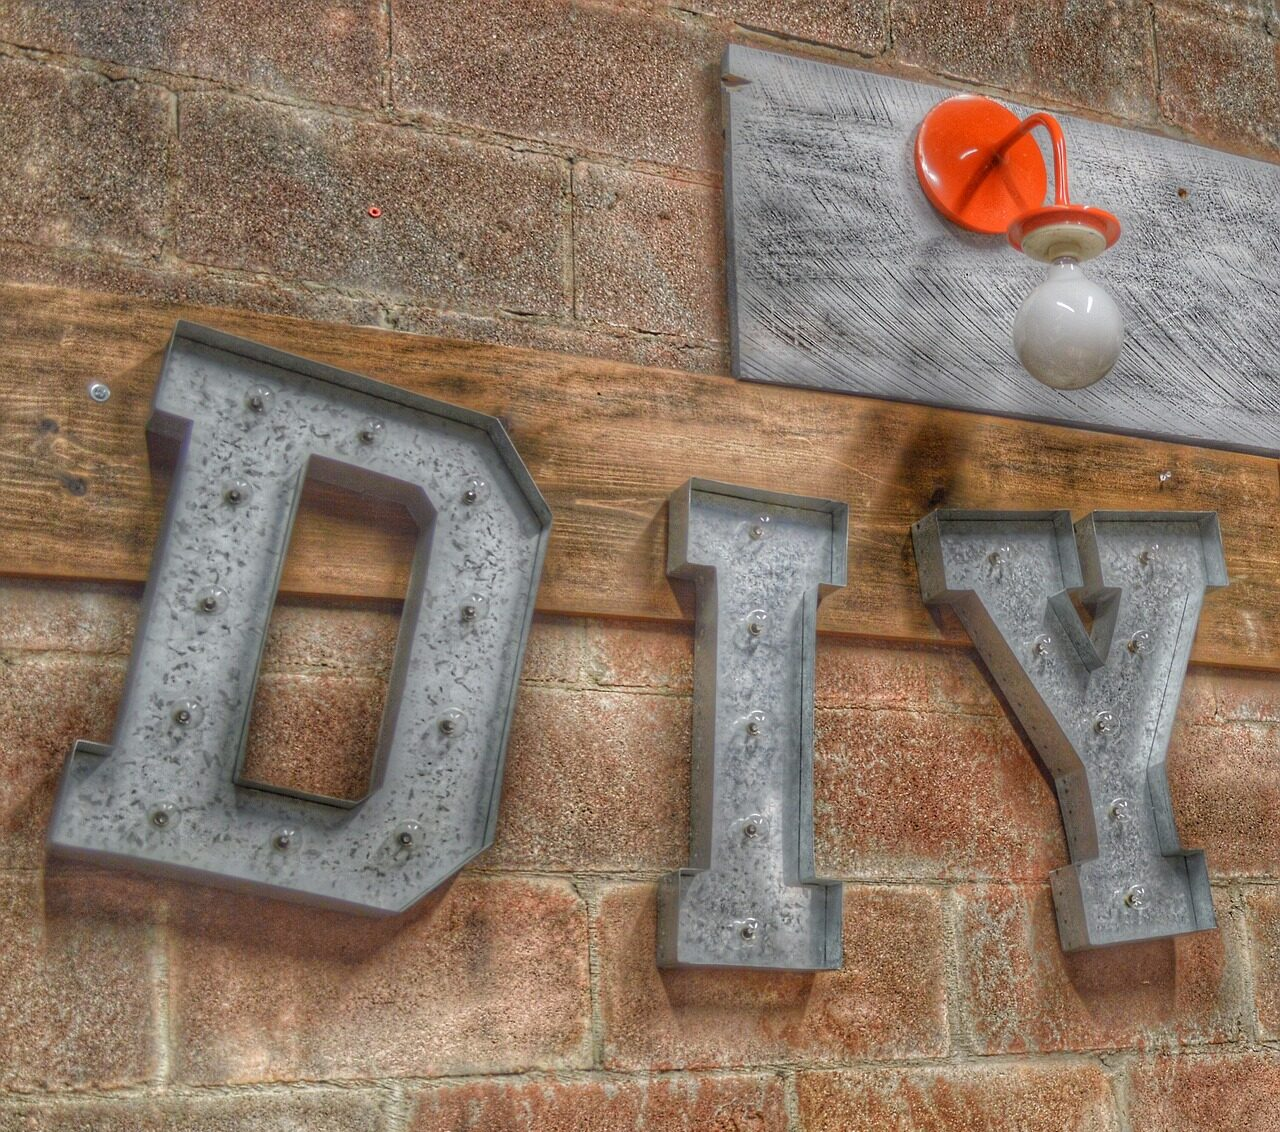 The letters DIY in metal hanging on a brick wall with a red light fixture on the One Stop Plumbing Do It Yourself DIY page